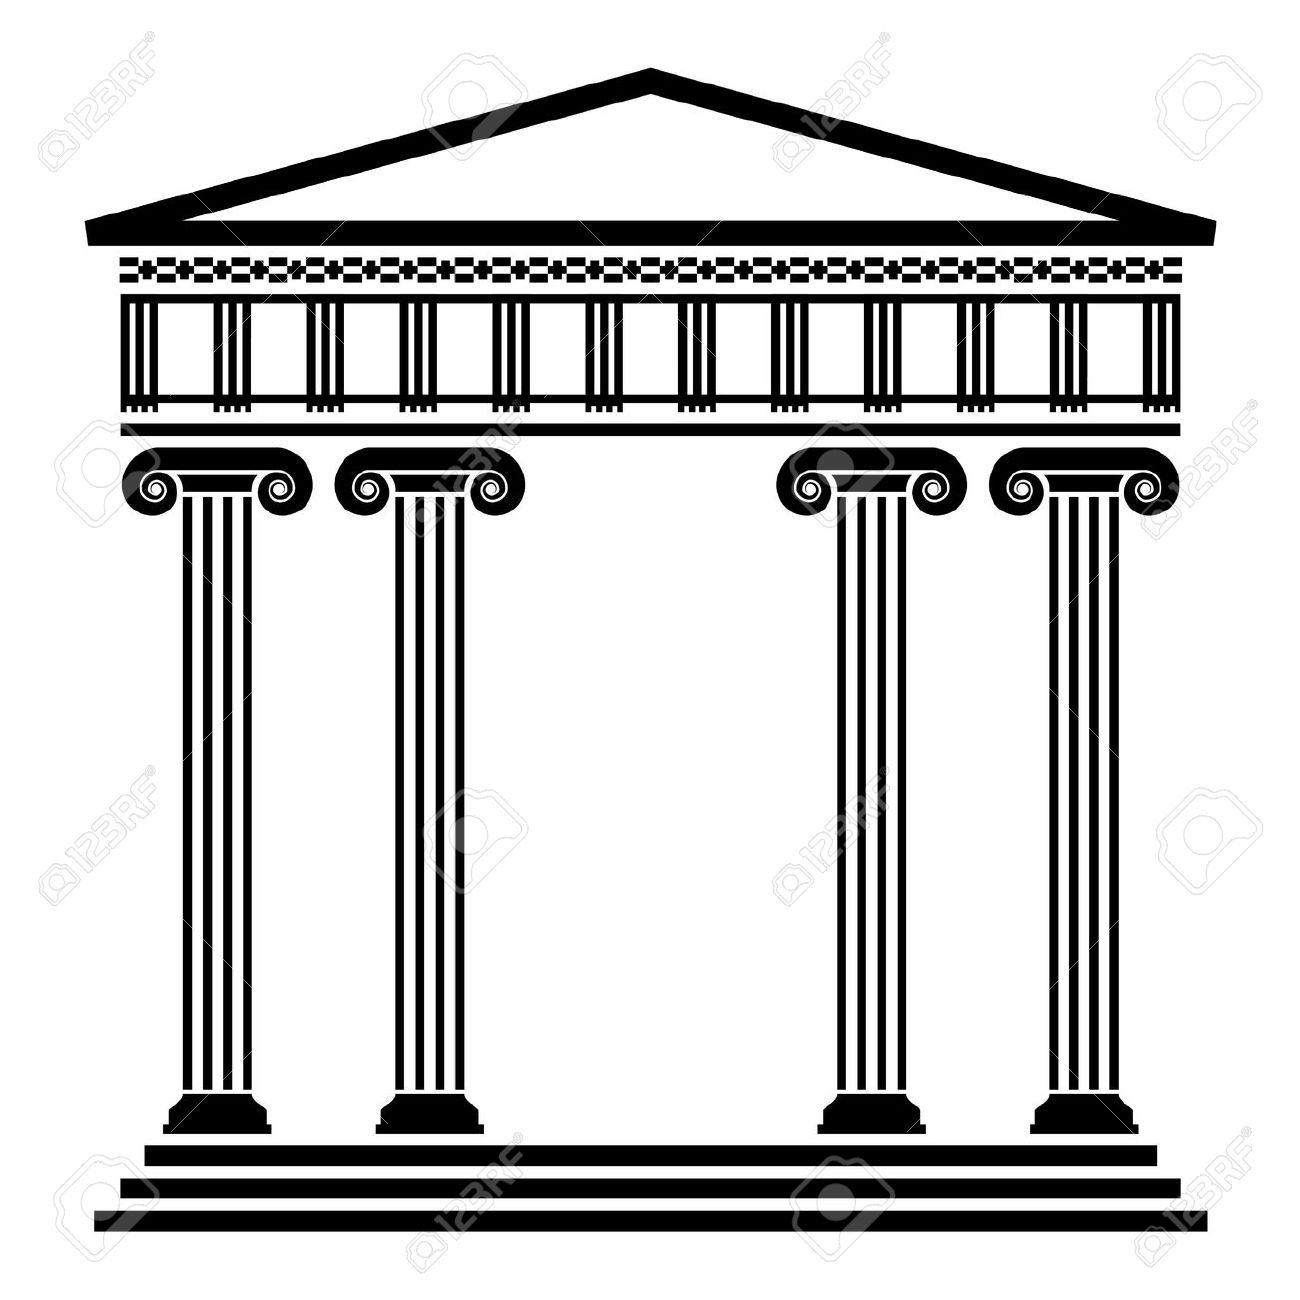 Stock vector sca . Greece clipart ancient greek architecture